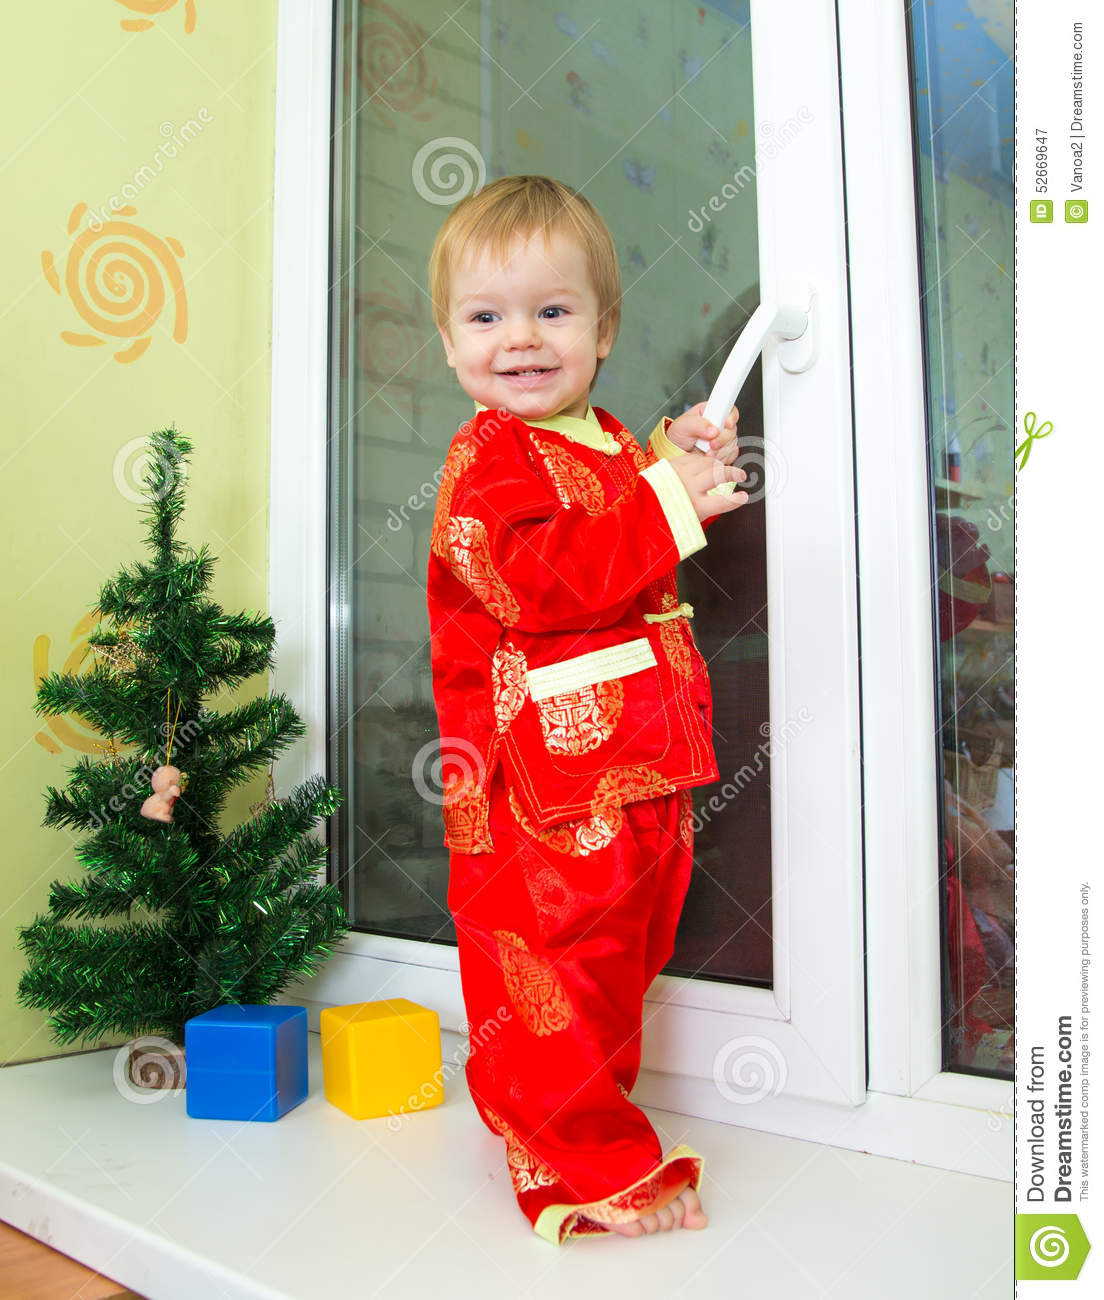 baby boy in chinese new year costume stands on the window sill - Chinese New Year Outfit